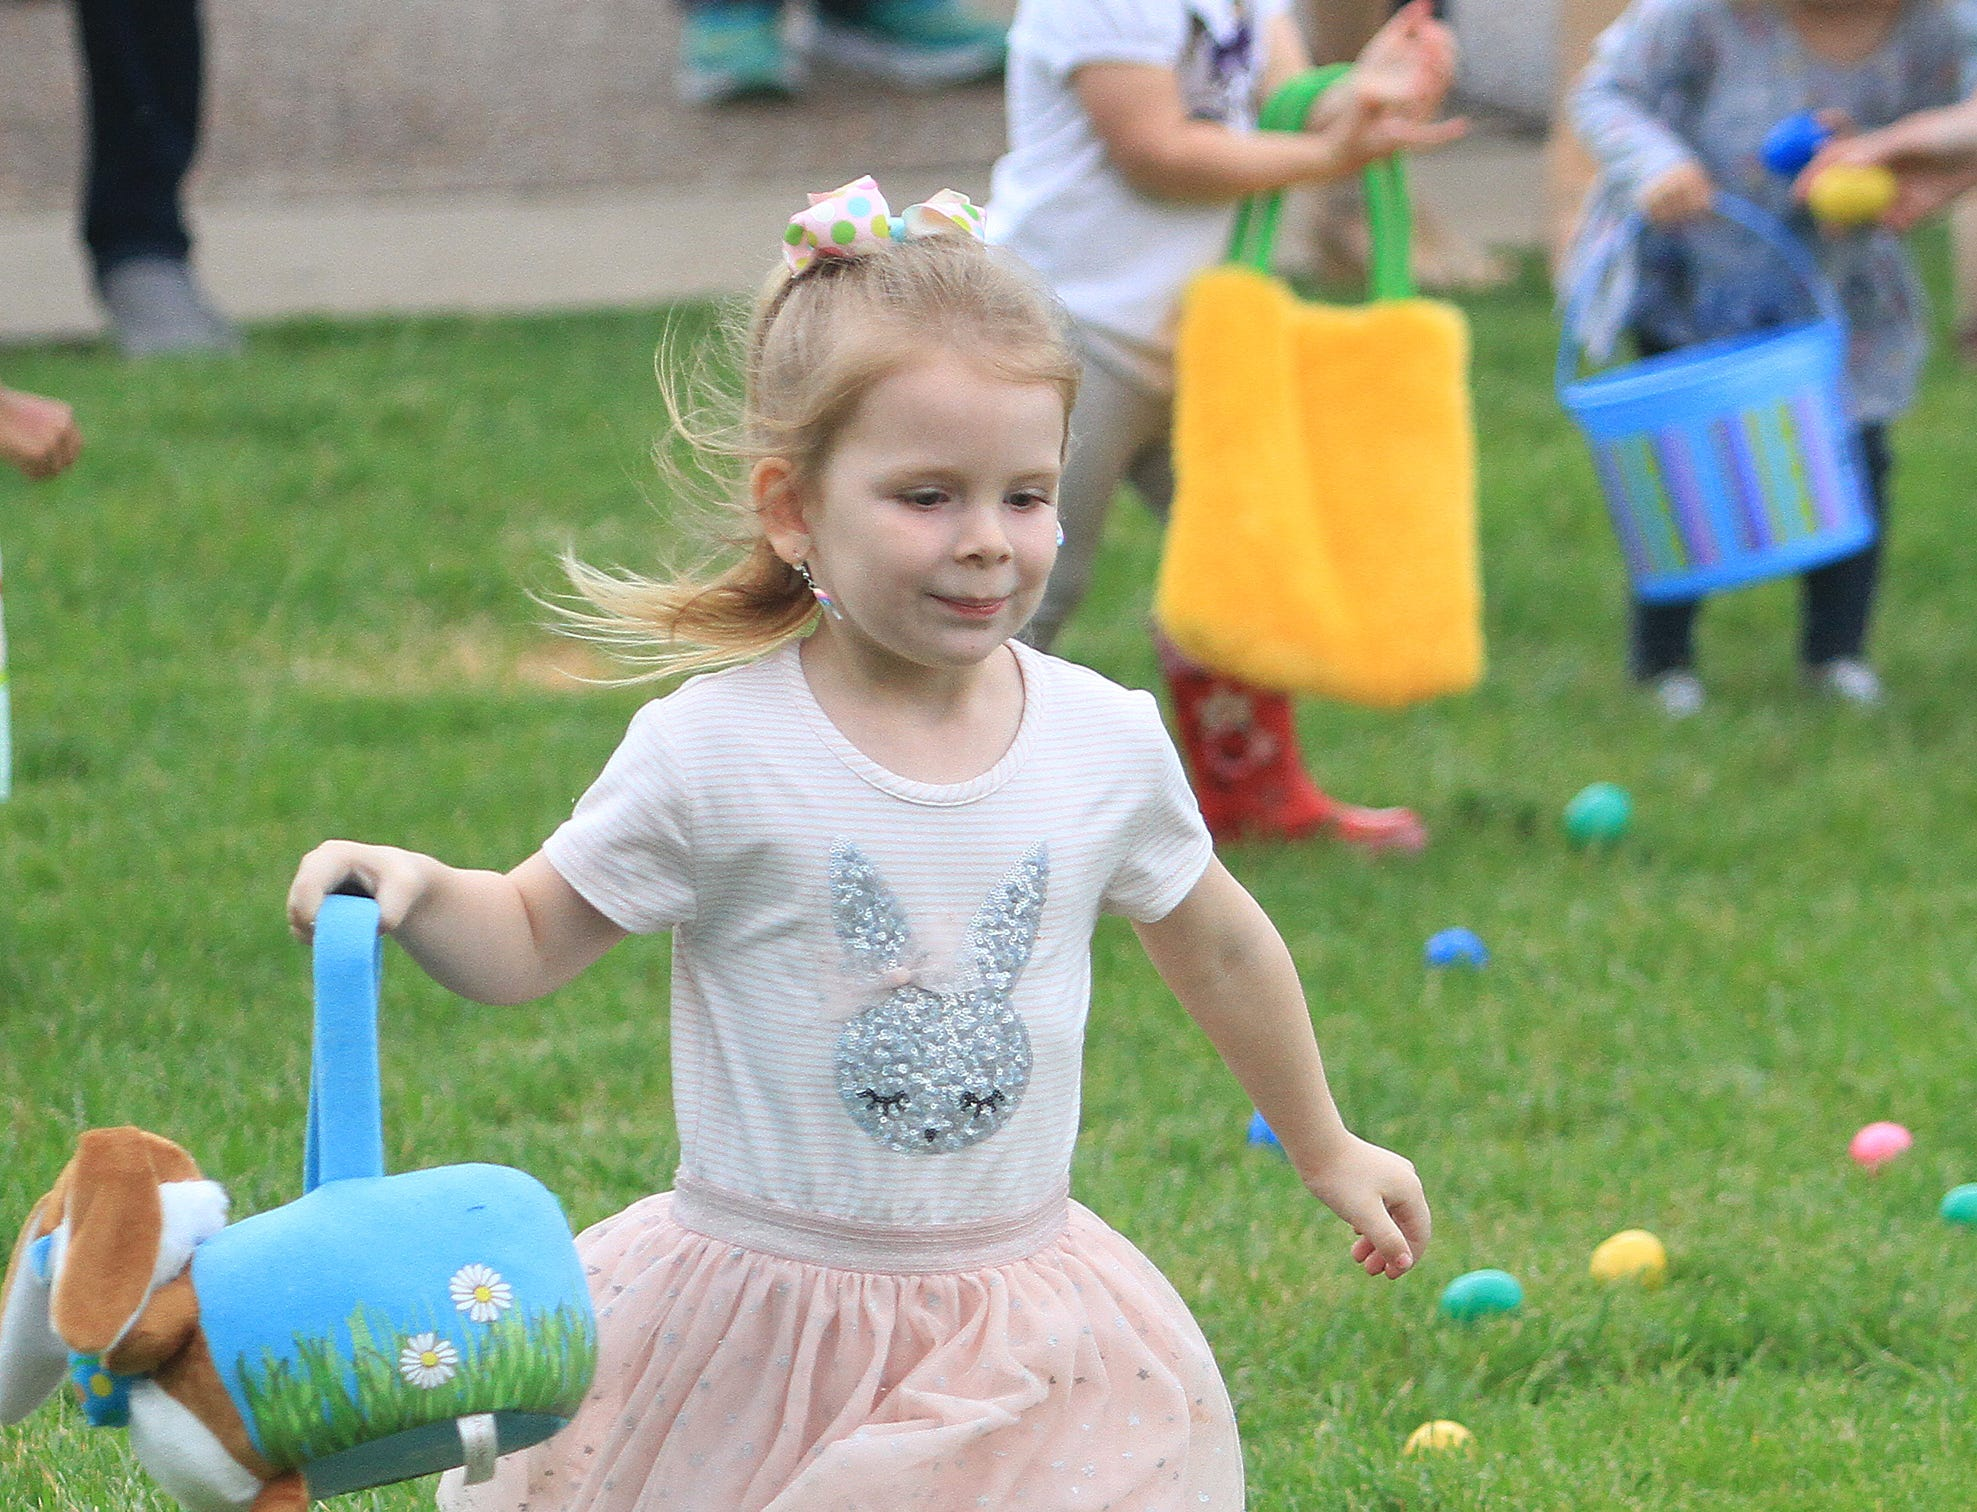 A young girl runs with her basket at the Egg hunt at the Sumner County YMCA in Hendersonville, TN on Saturday, April 13, 2019.